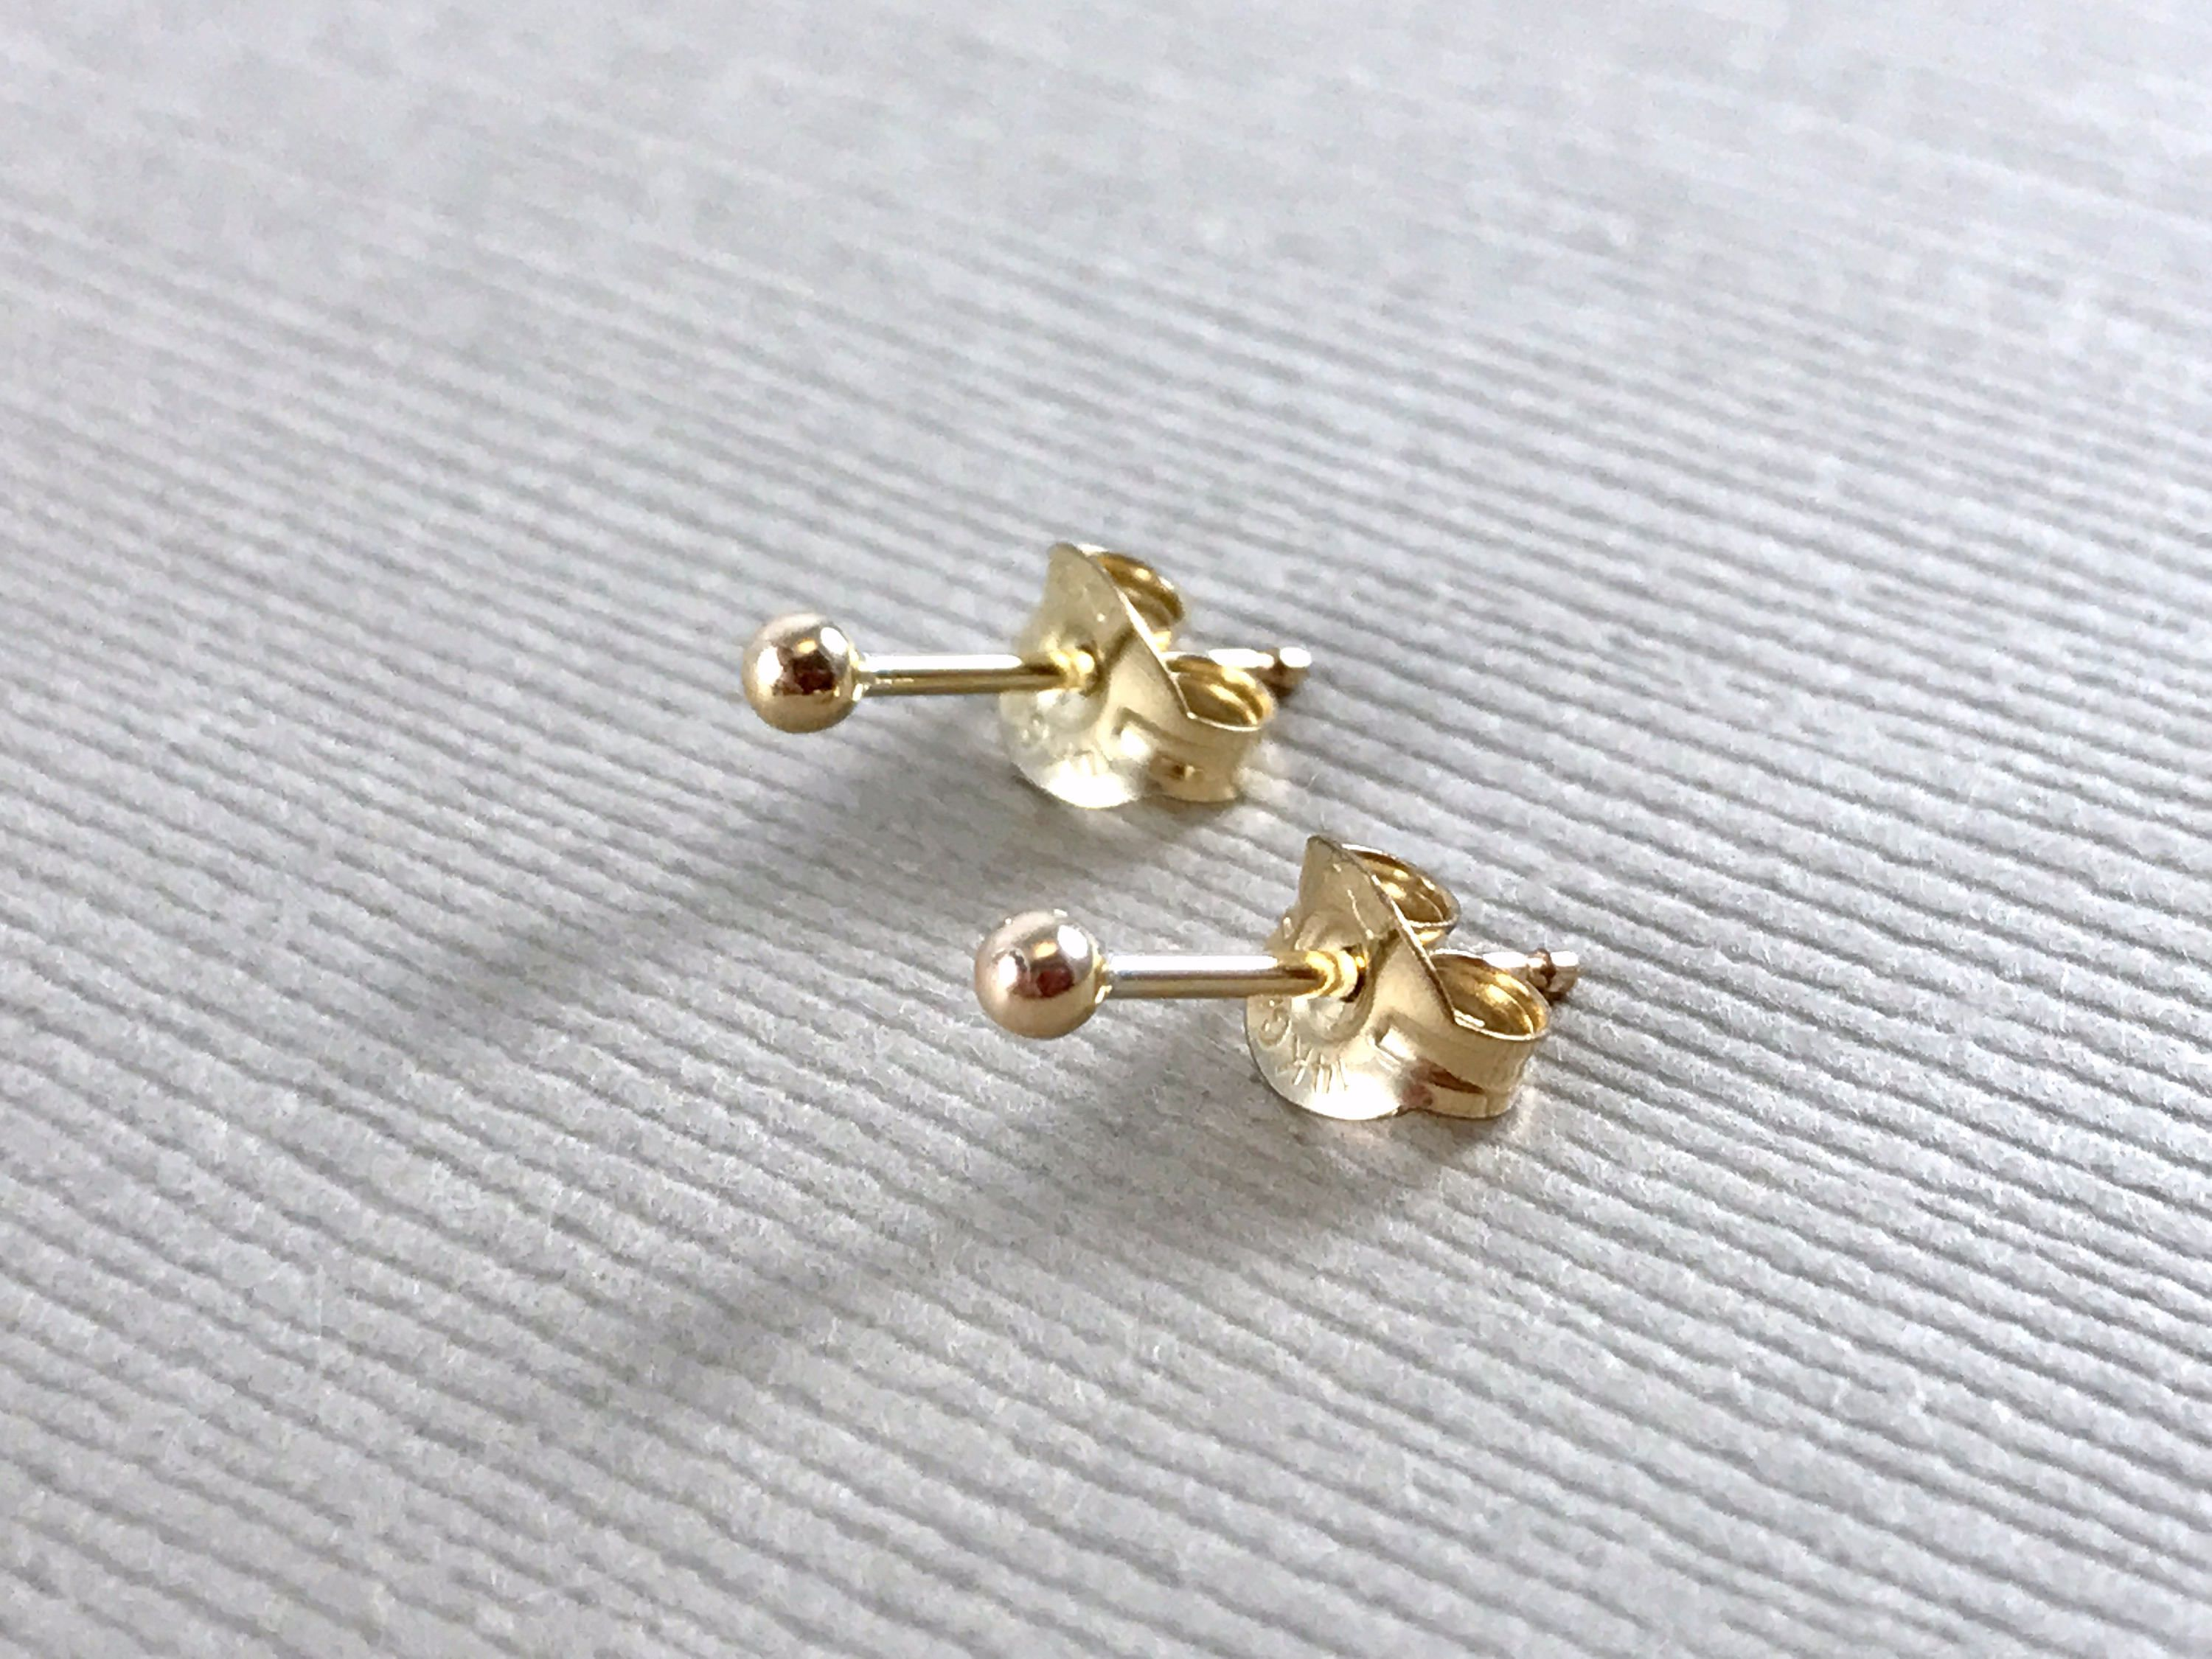 tragus product earrings gold helix ear simple zircon cz stud studs cute plain piercings